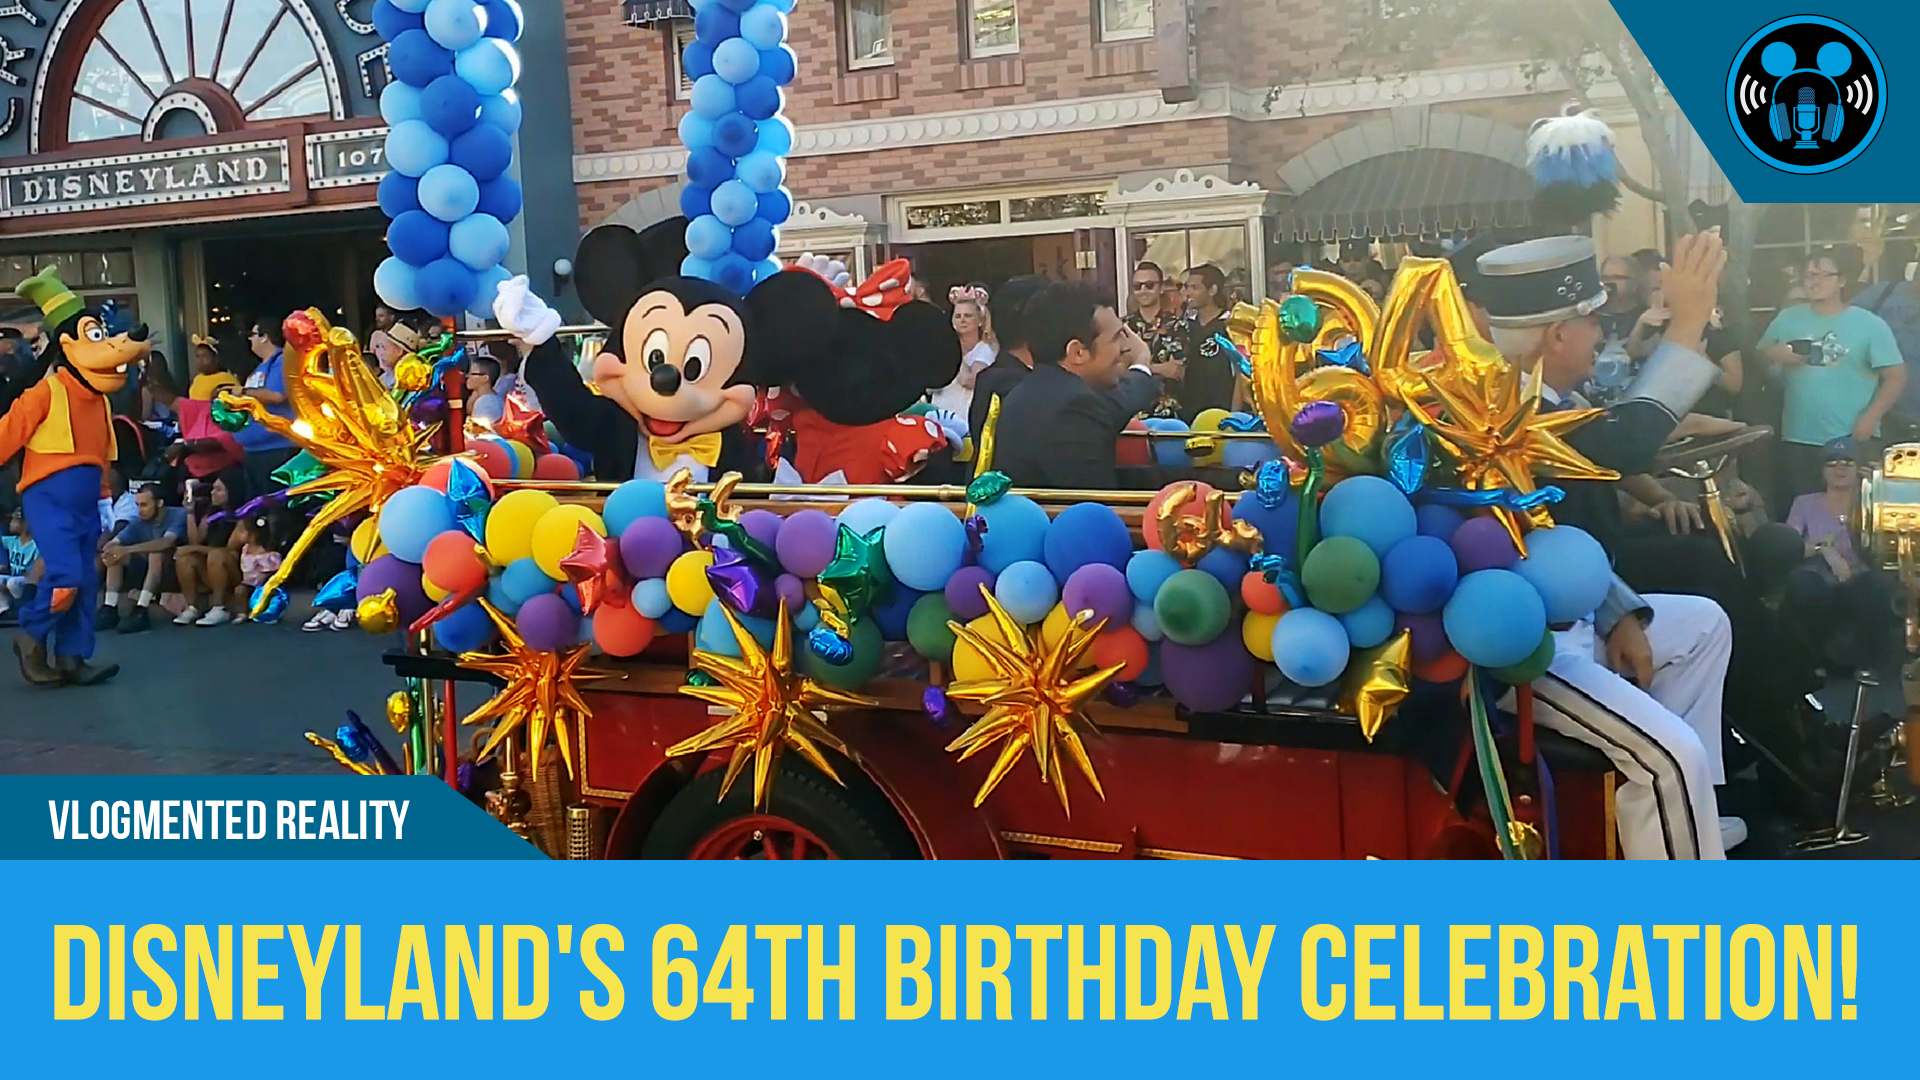 Disneyland's 64 Birthday Celebration!